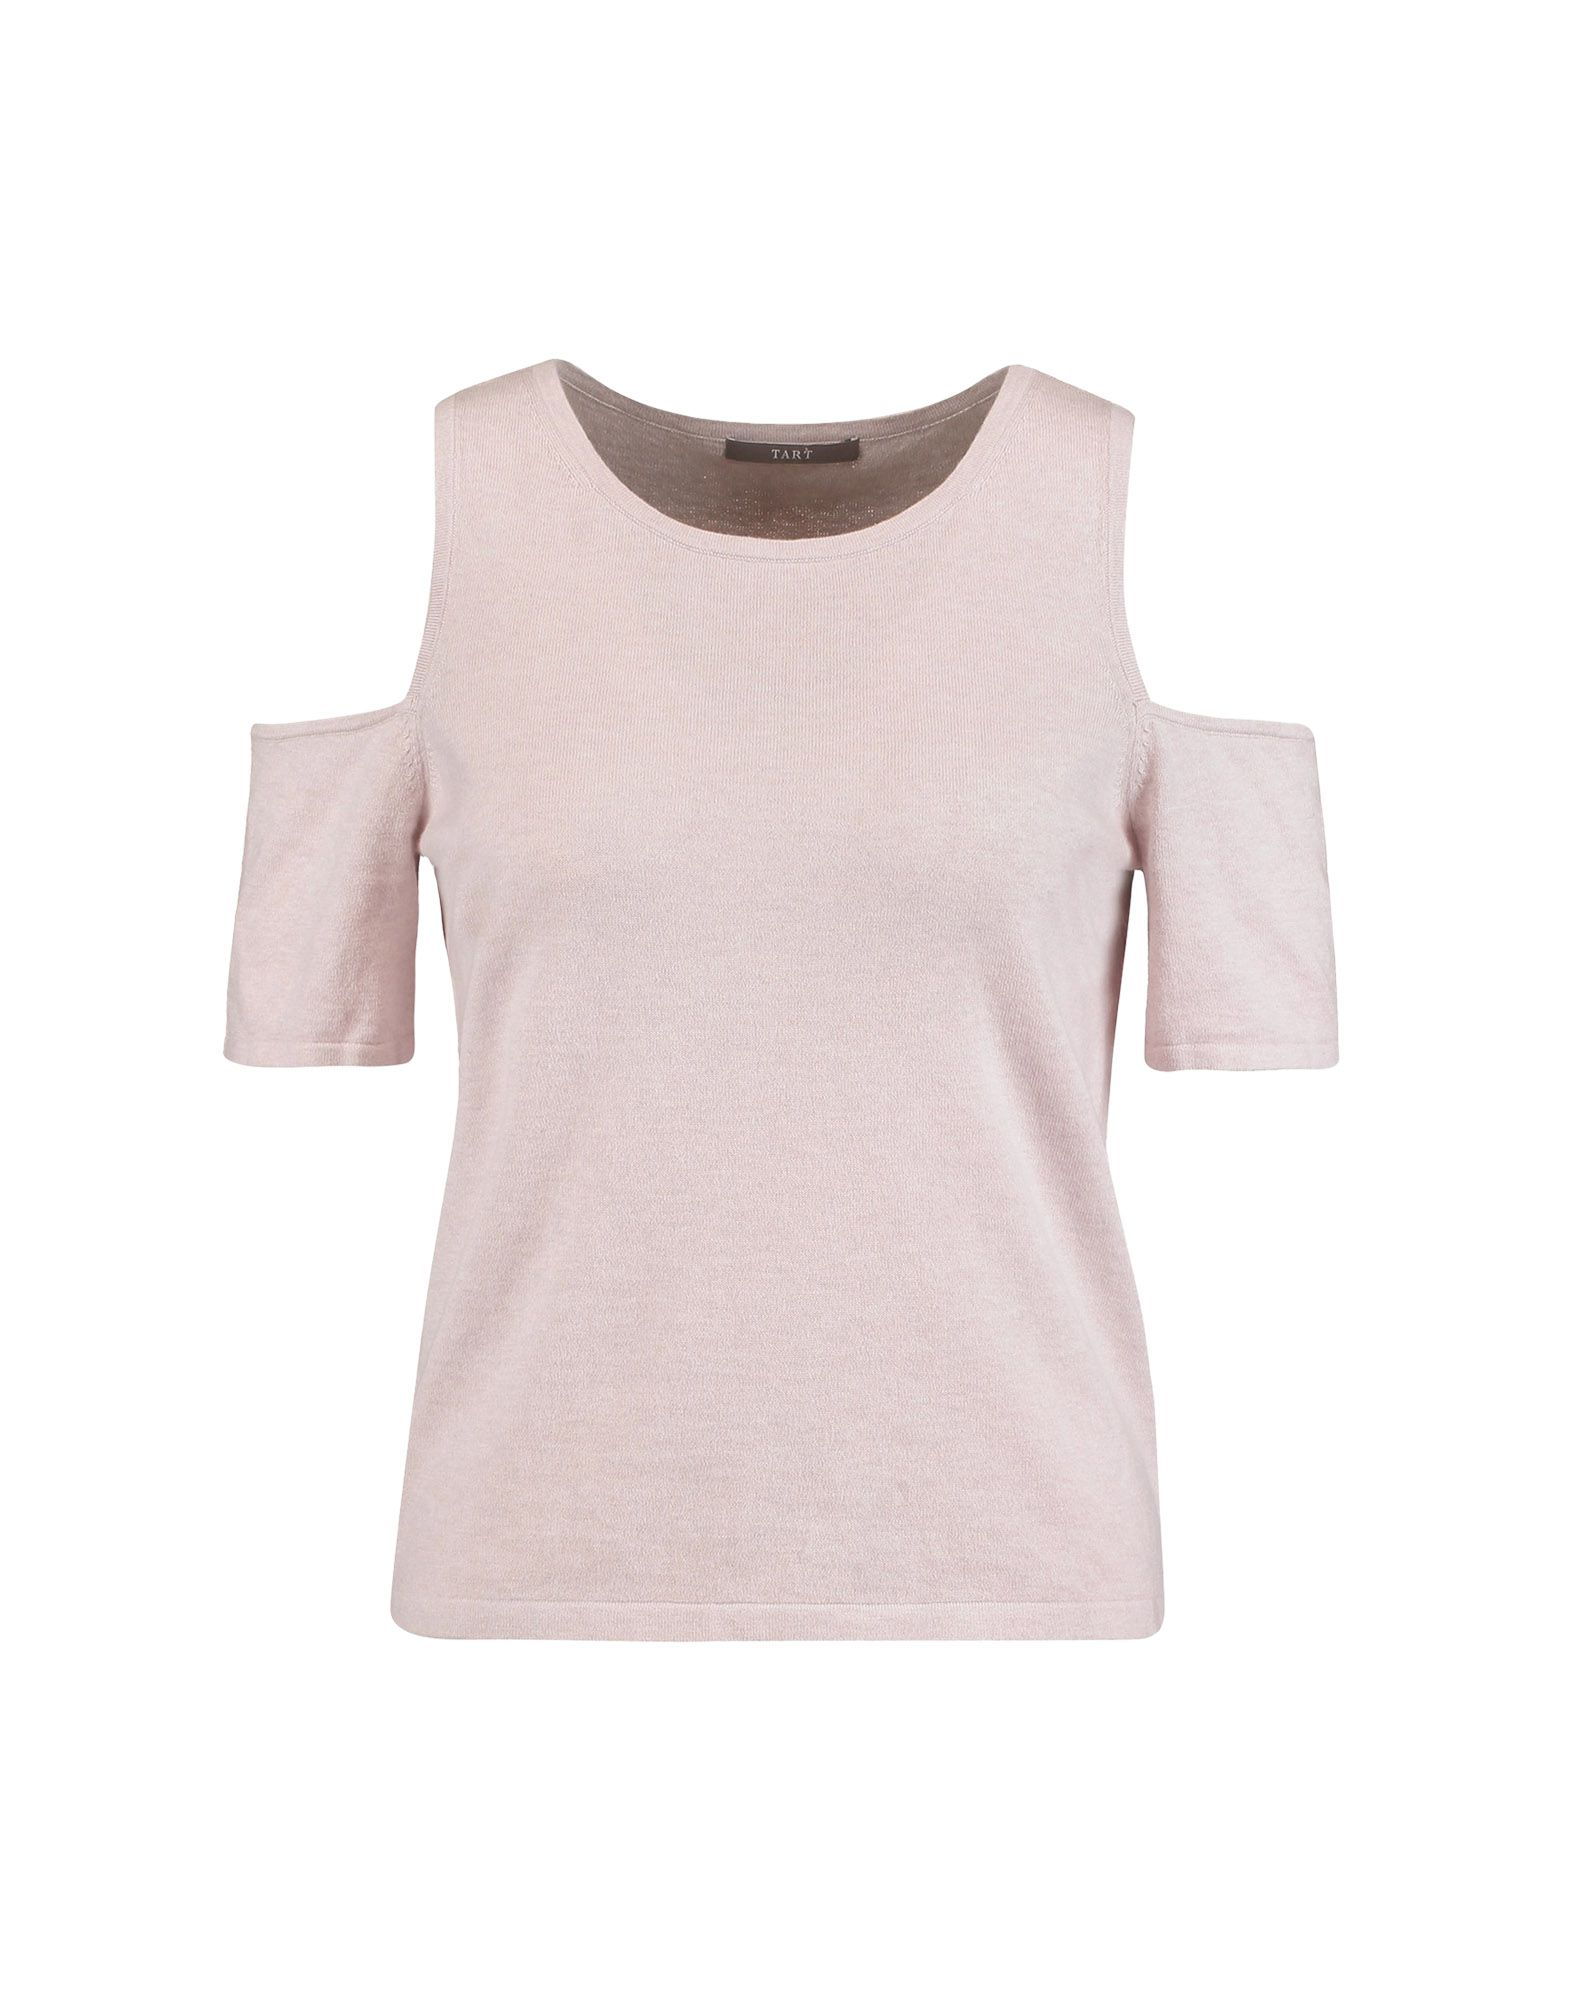 TART COLLECTIONS Sweater in Light Pink